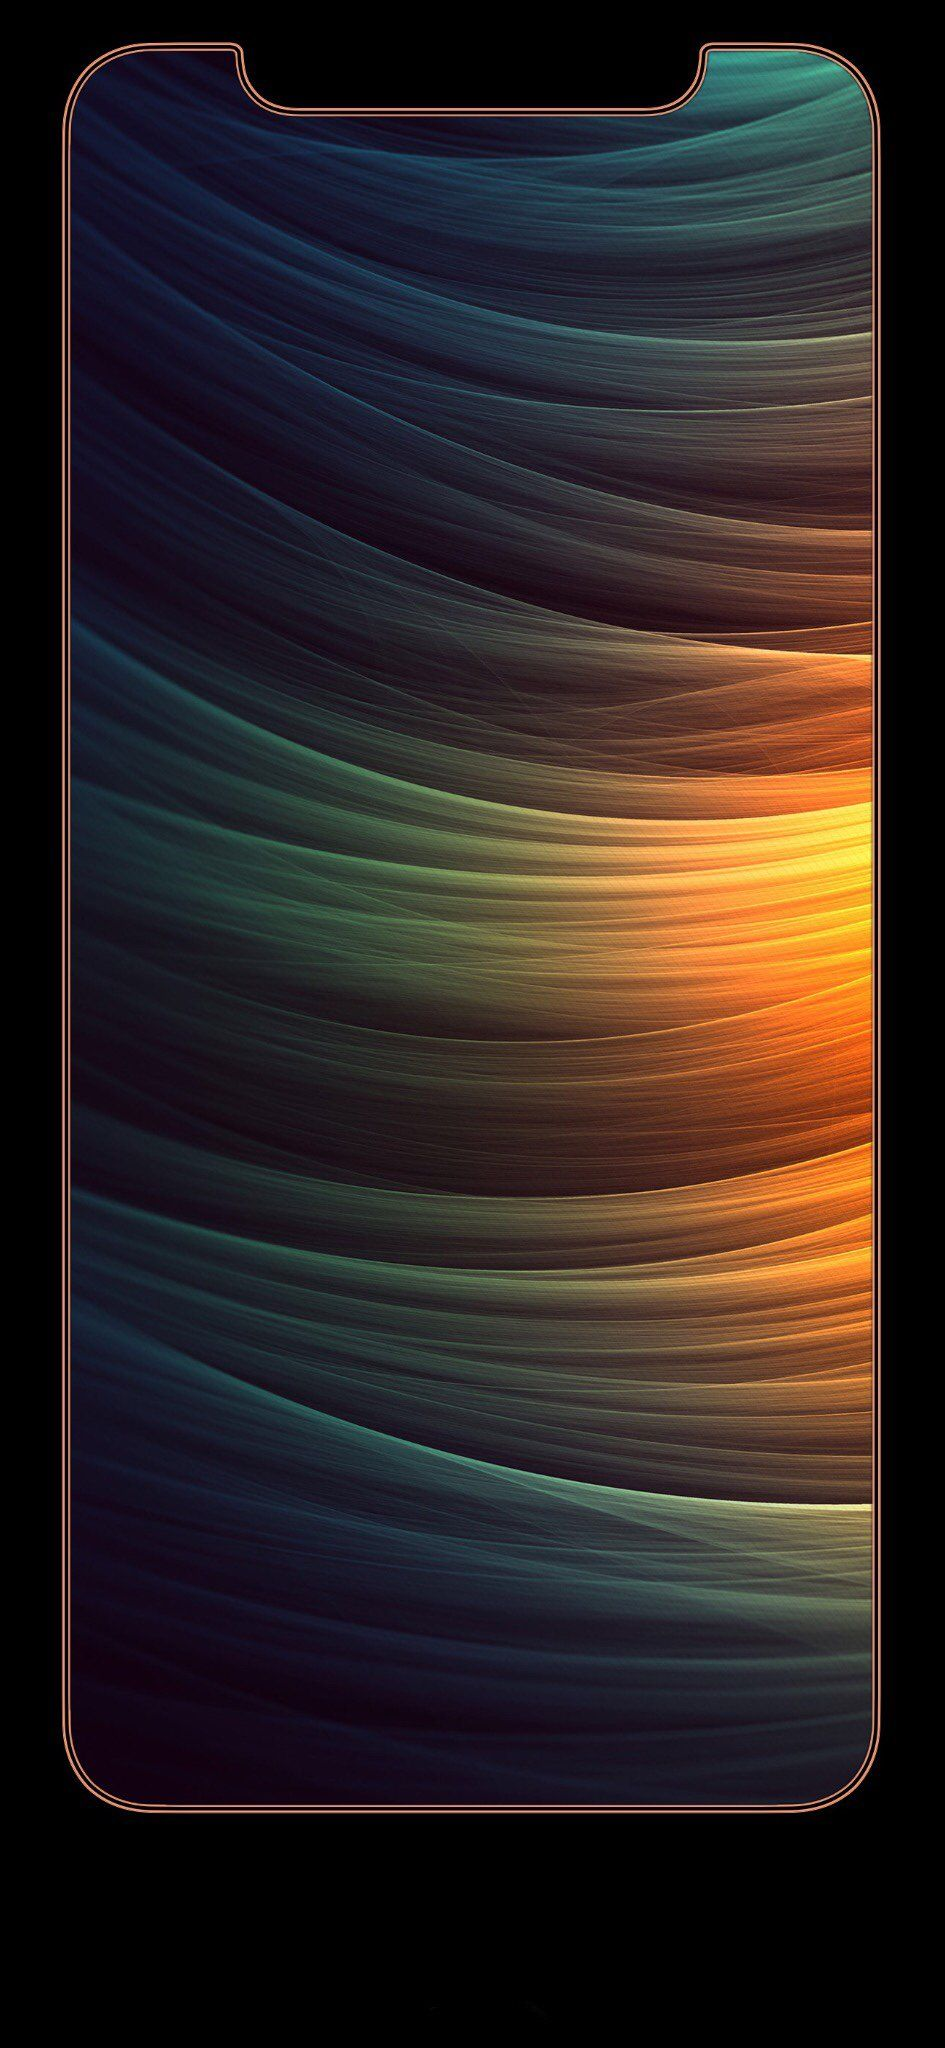 The iPhone X Wallpaper Thread Page 27 iPhone, iPad